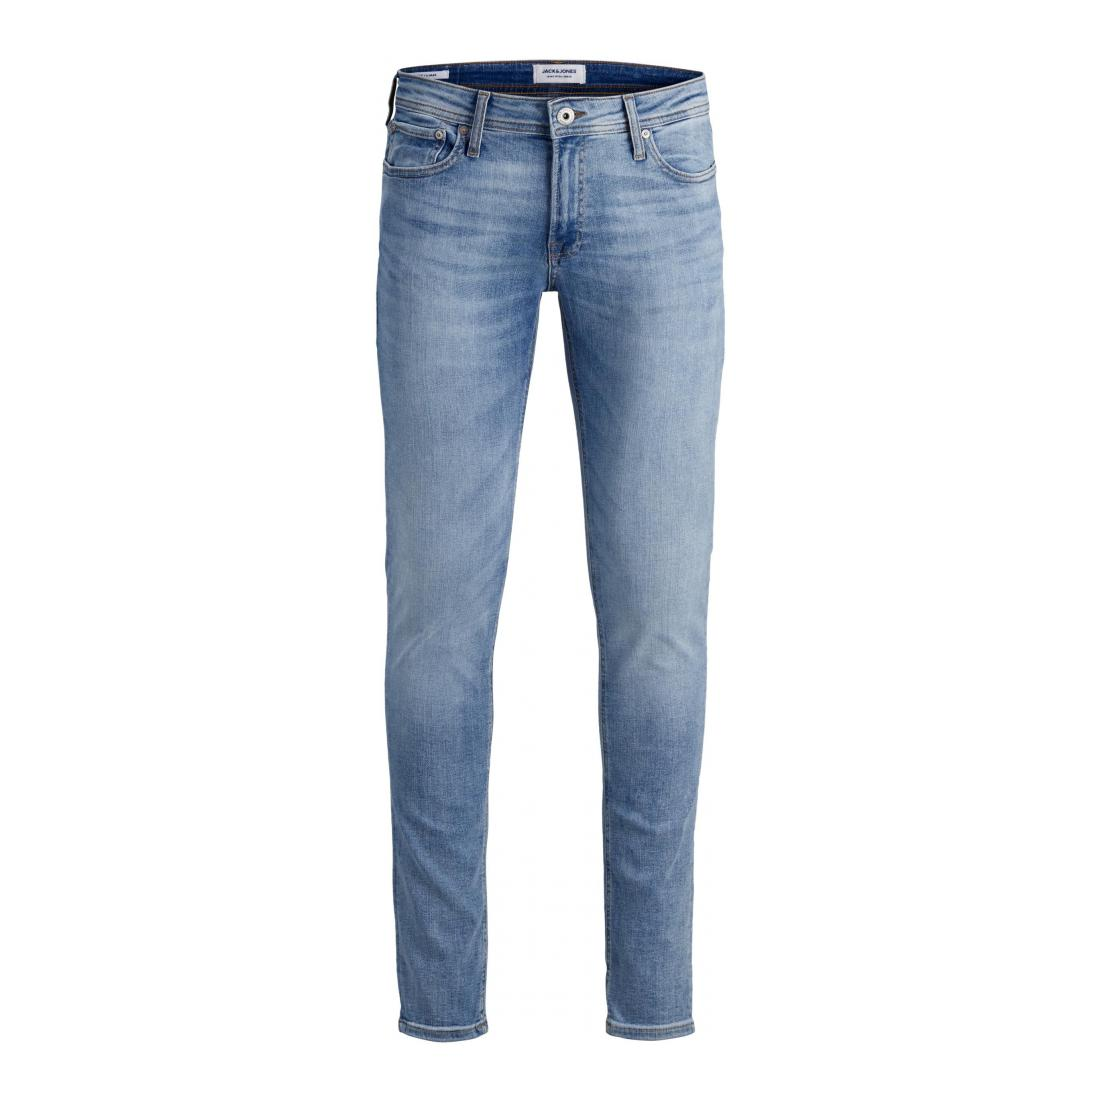 Jack & Jones Jeans Herren JJILIAM JJORIGINAL AM 792